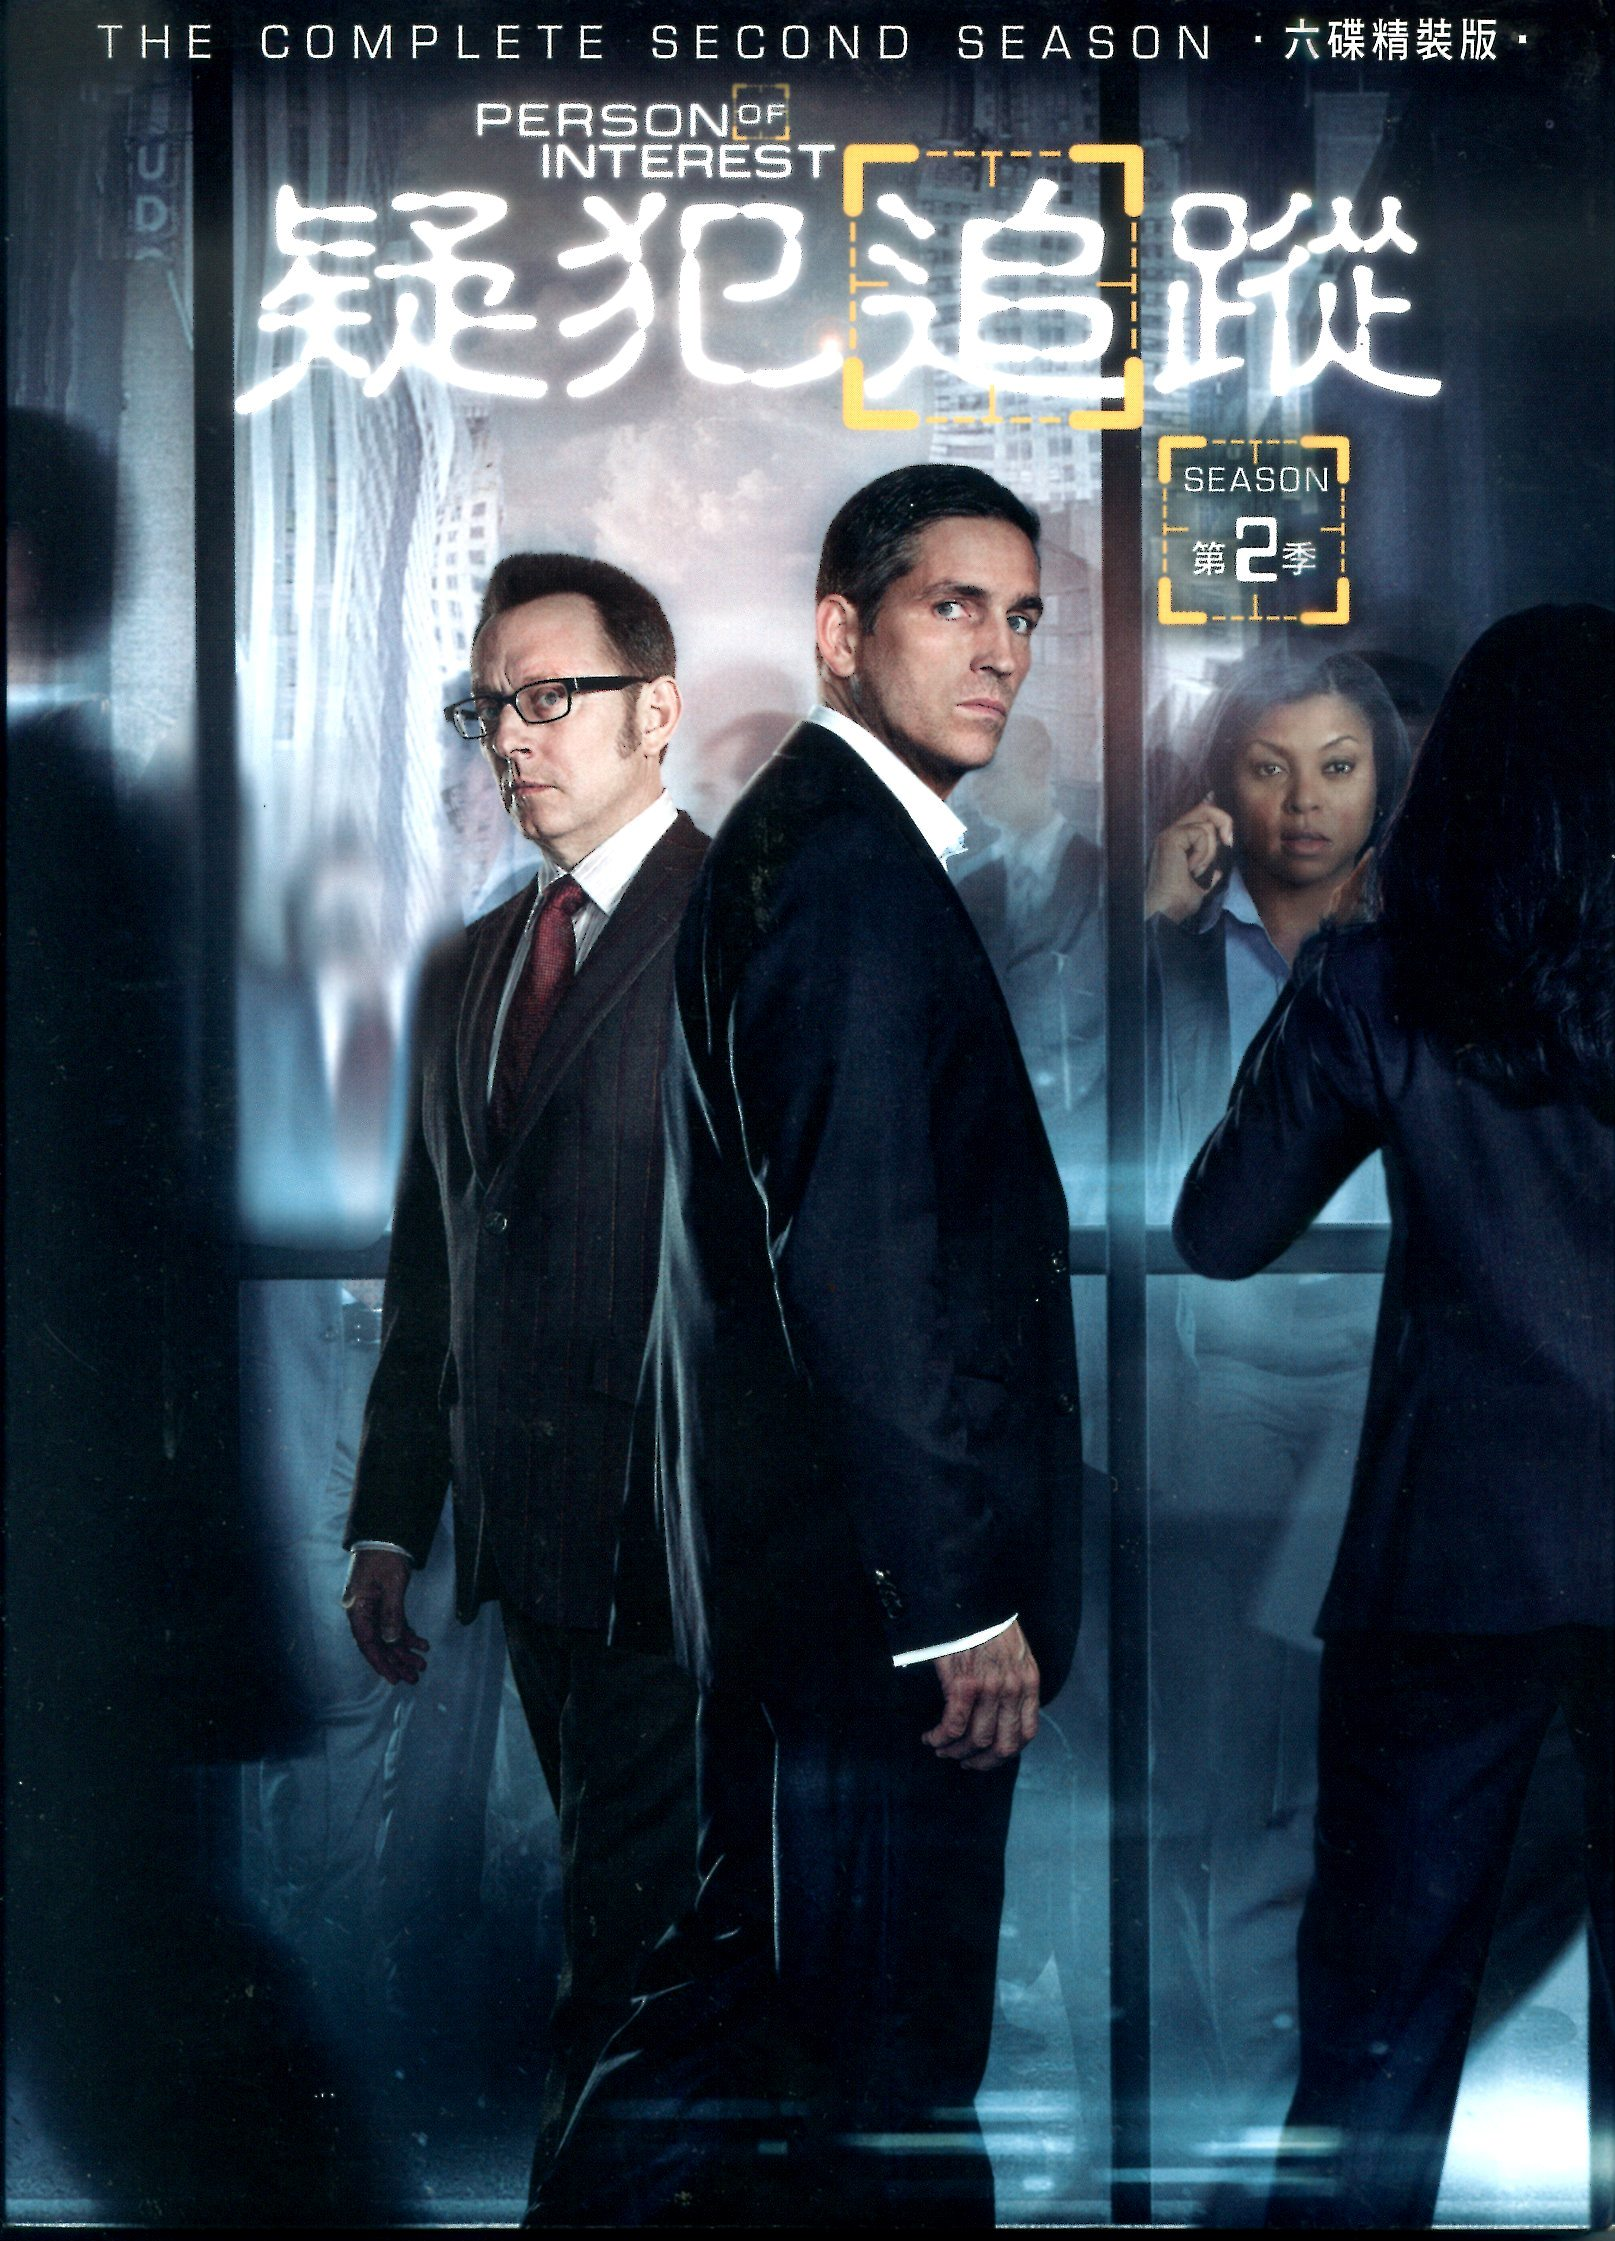 Person of interest(家用版) the complete second season = 疑犯追蹤.